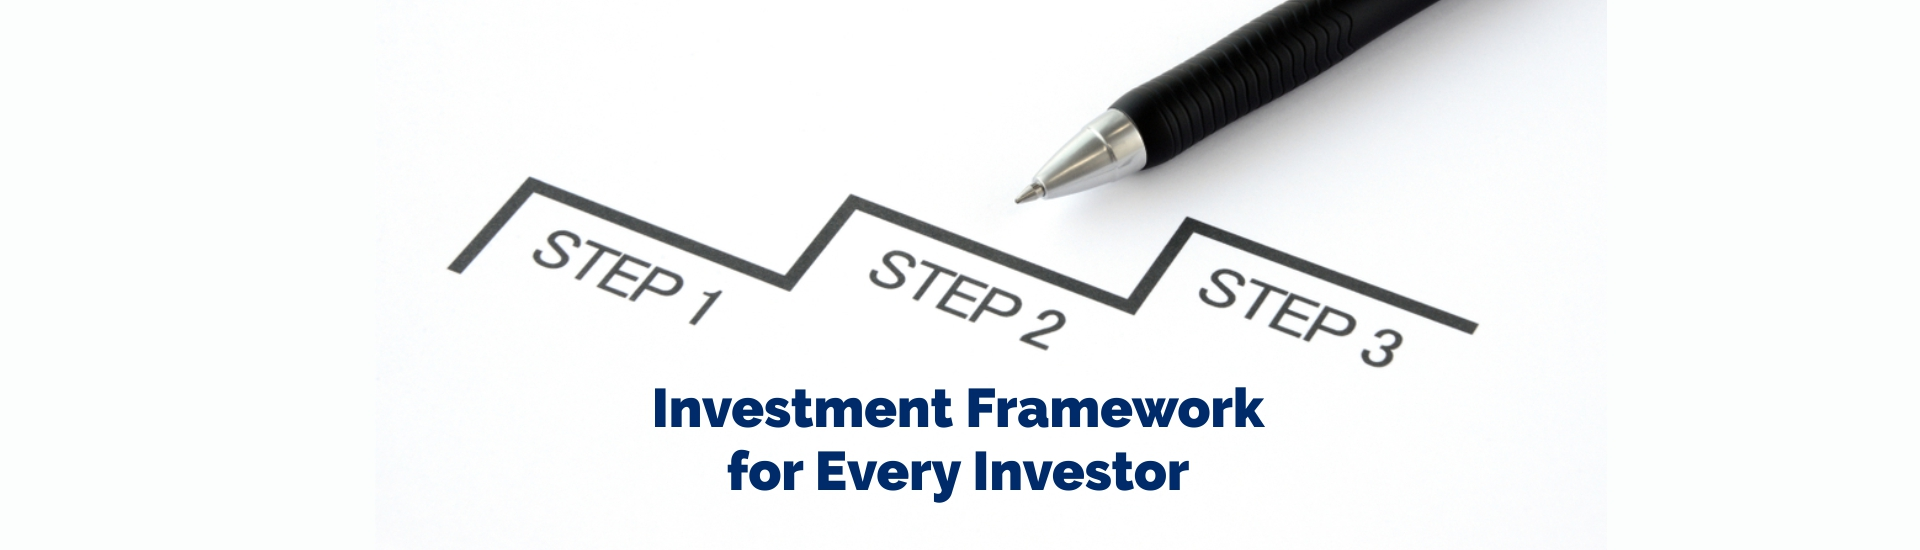 Investment Framework for Every Investor